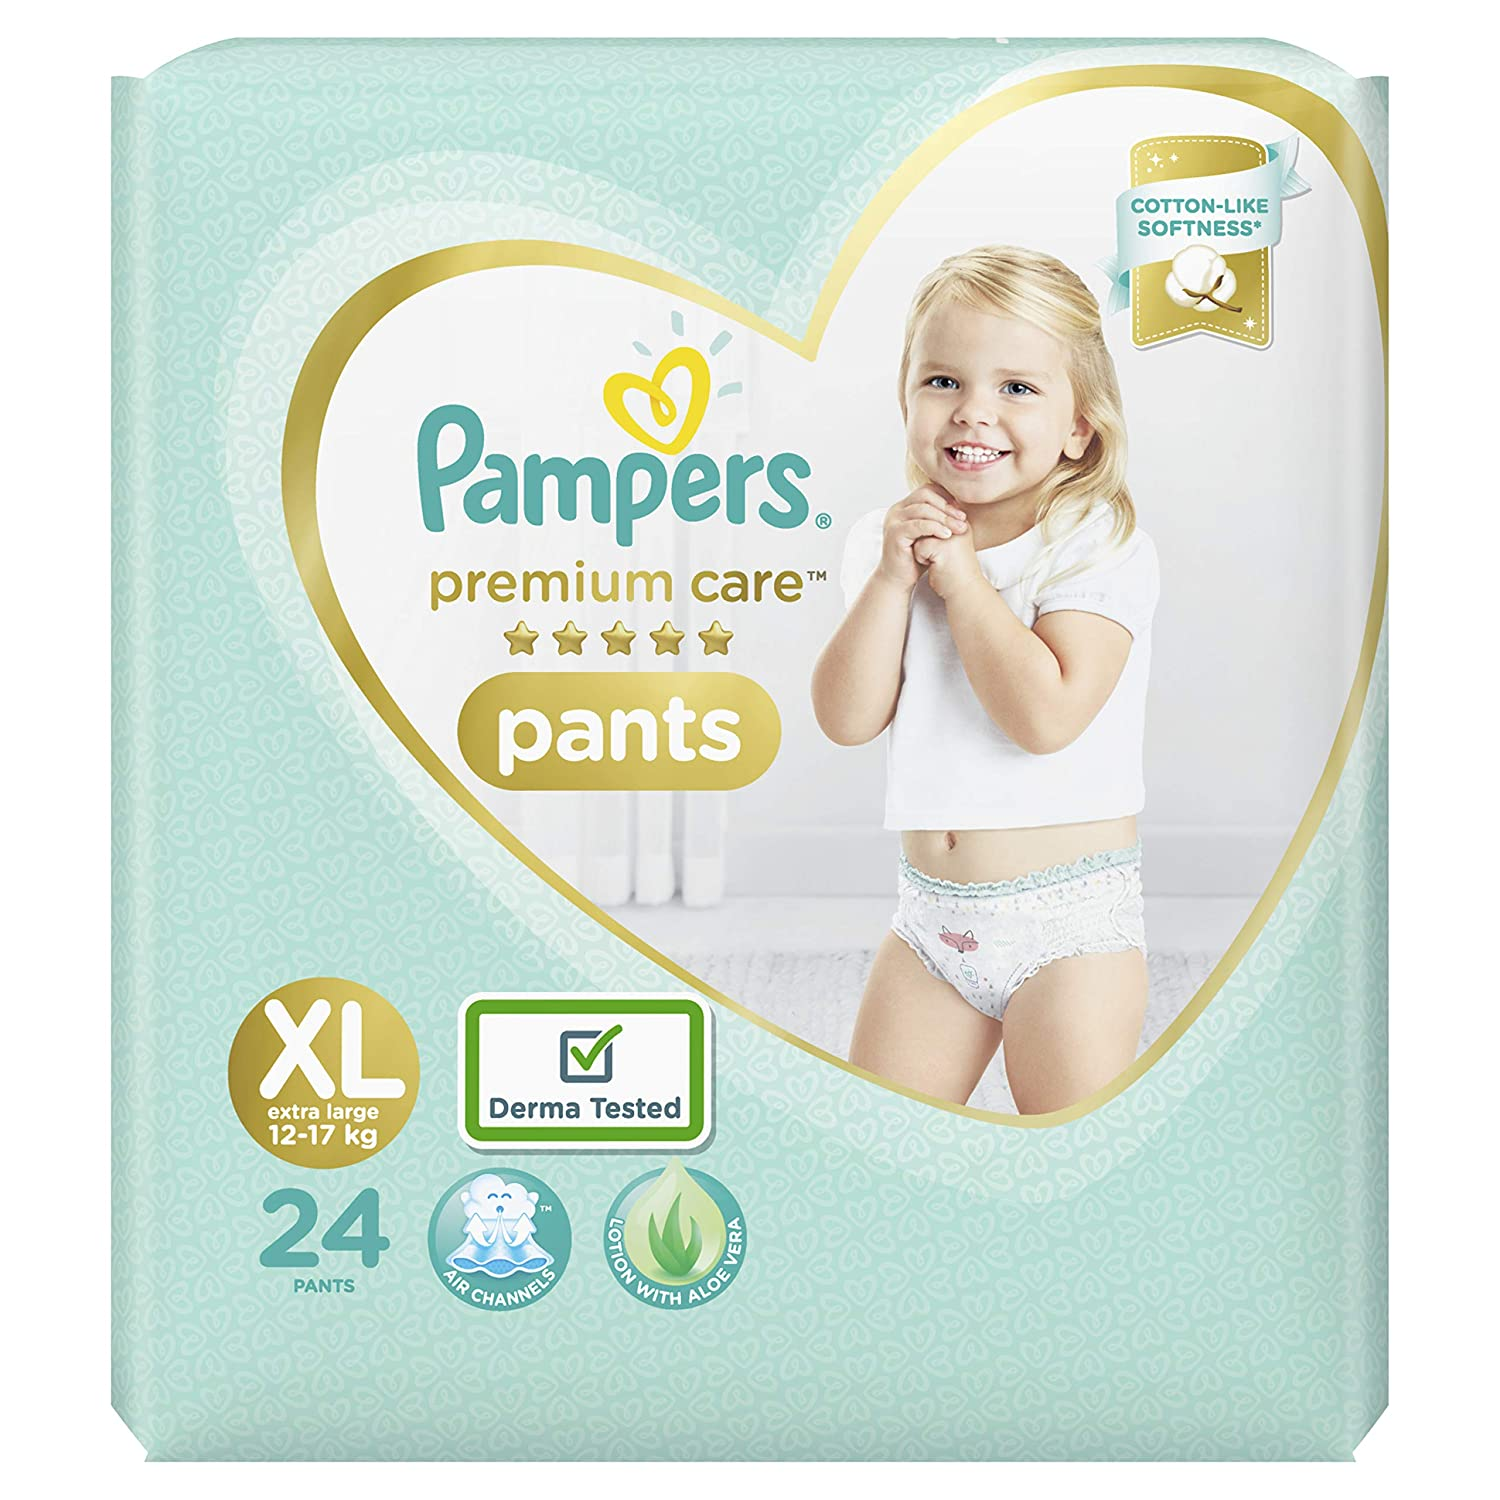 Pampers Premium Care Xtra Large - 24 Diaper Pants